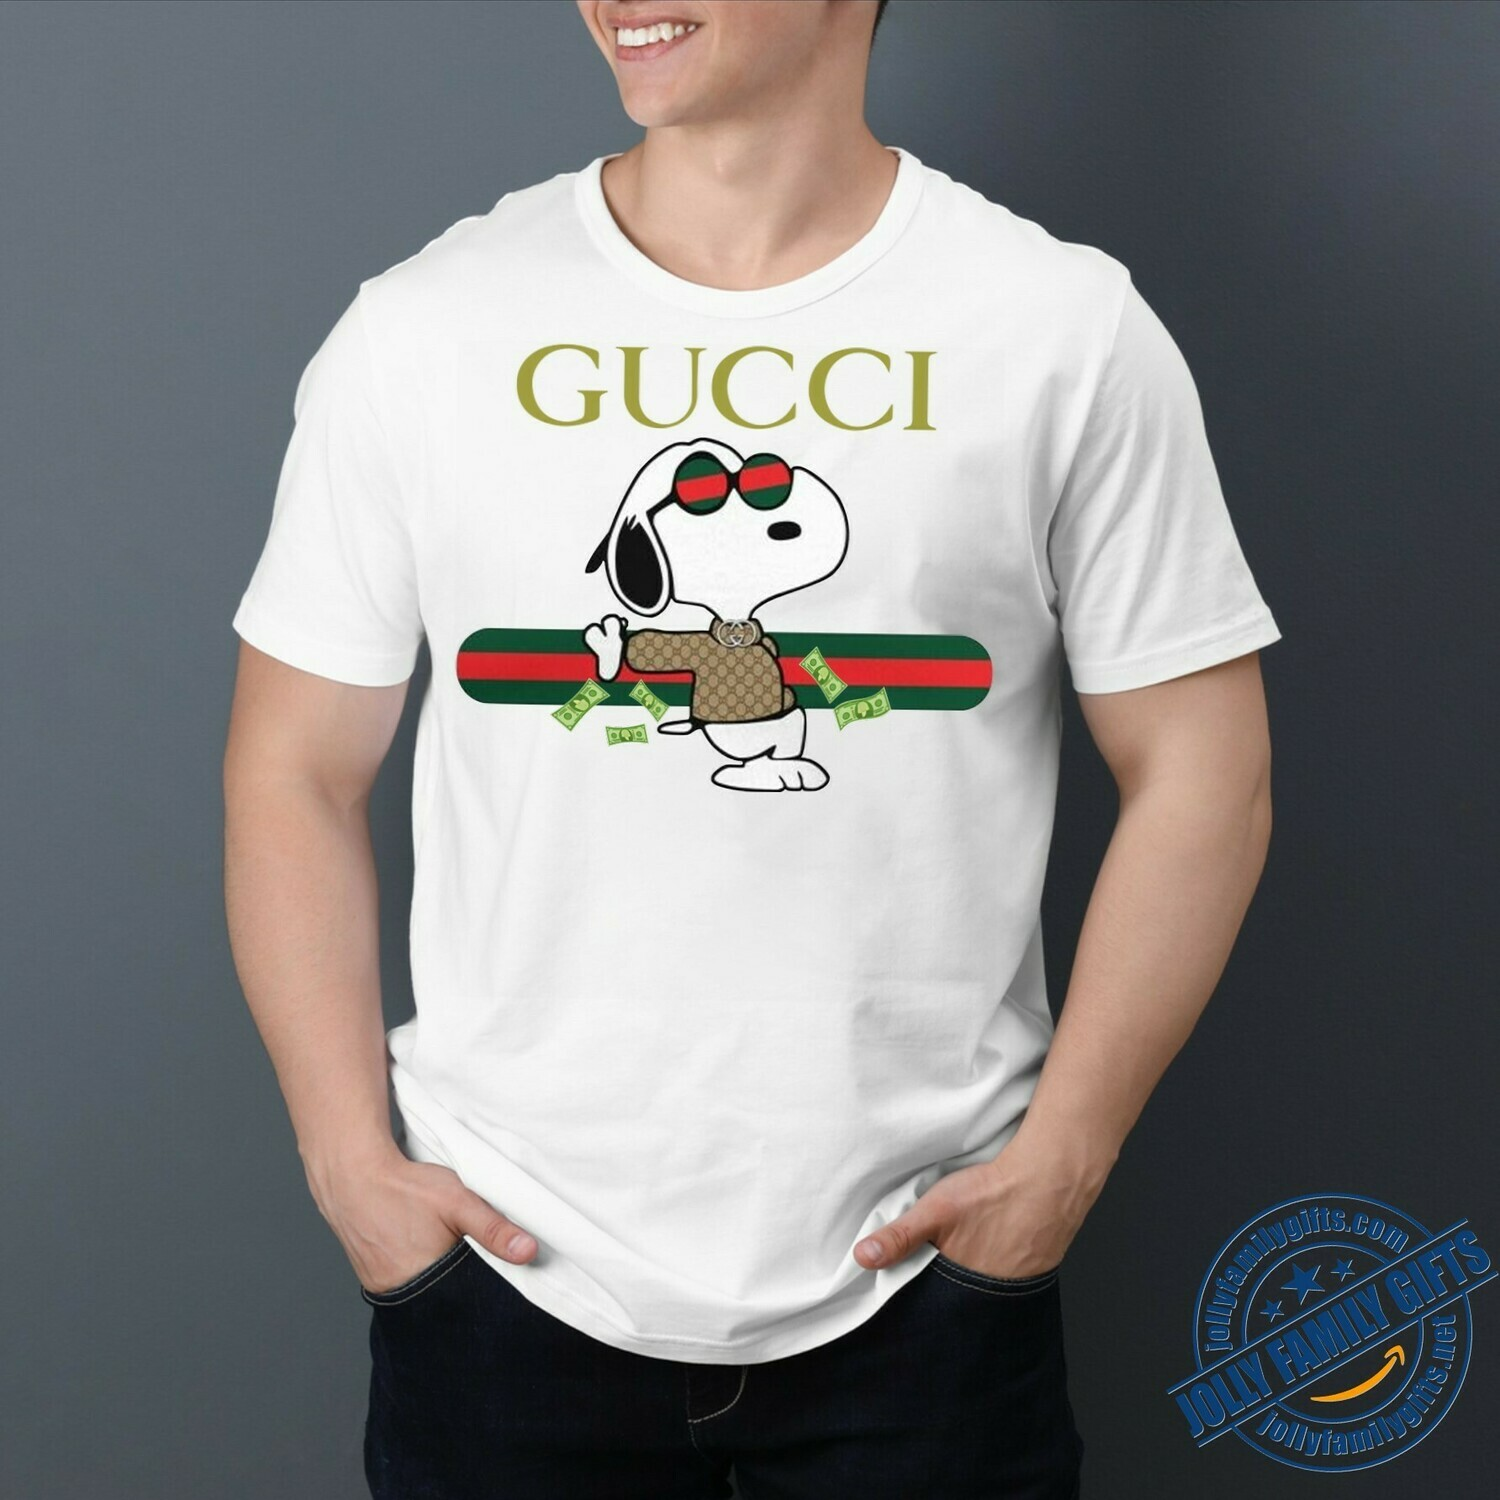 Gucci Stripe Stylish Snoopy,The Peanuts Dabbing Gucci Joe Cool Stay Stylish,Charlie Brown The Sky's the Limit  Unisex T-Shirt Hoodie Sweatshirt Sweater for Ladies Women Men Kids Youth Gifts Tee Jolly